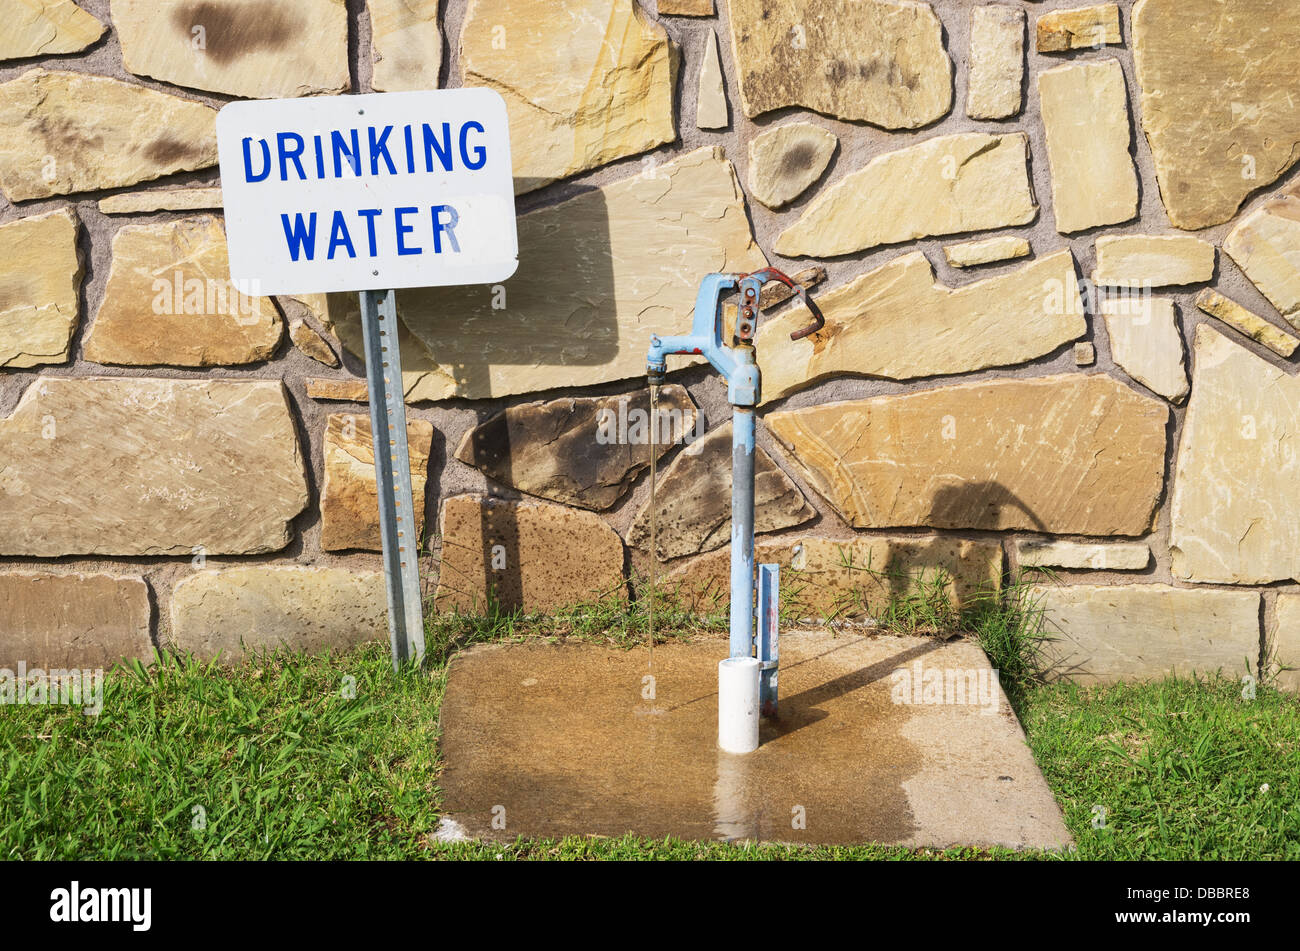 drinking water tap with sign and running water behind a stone wall - Stock Image